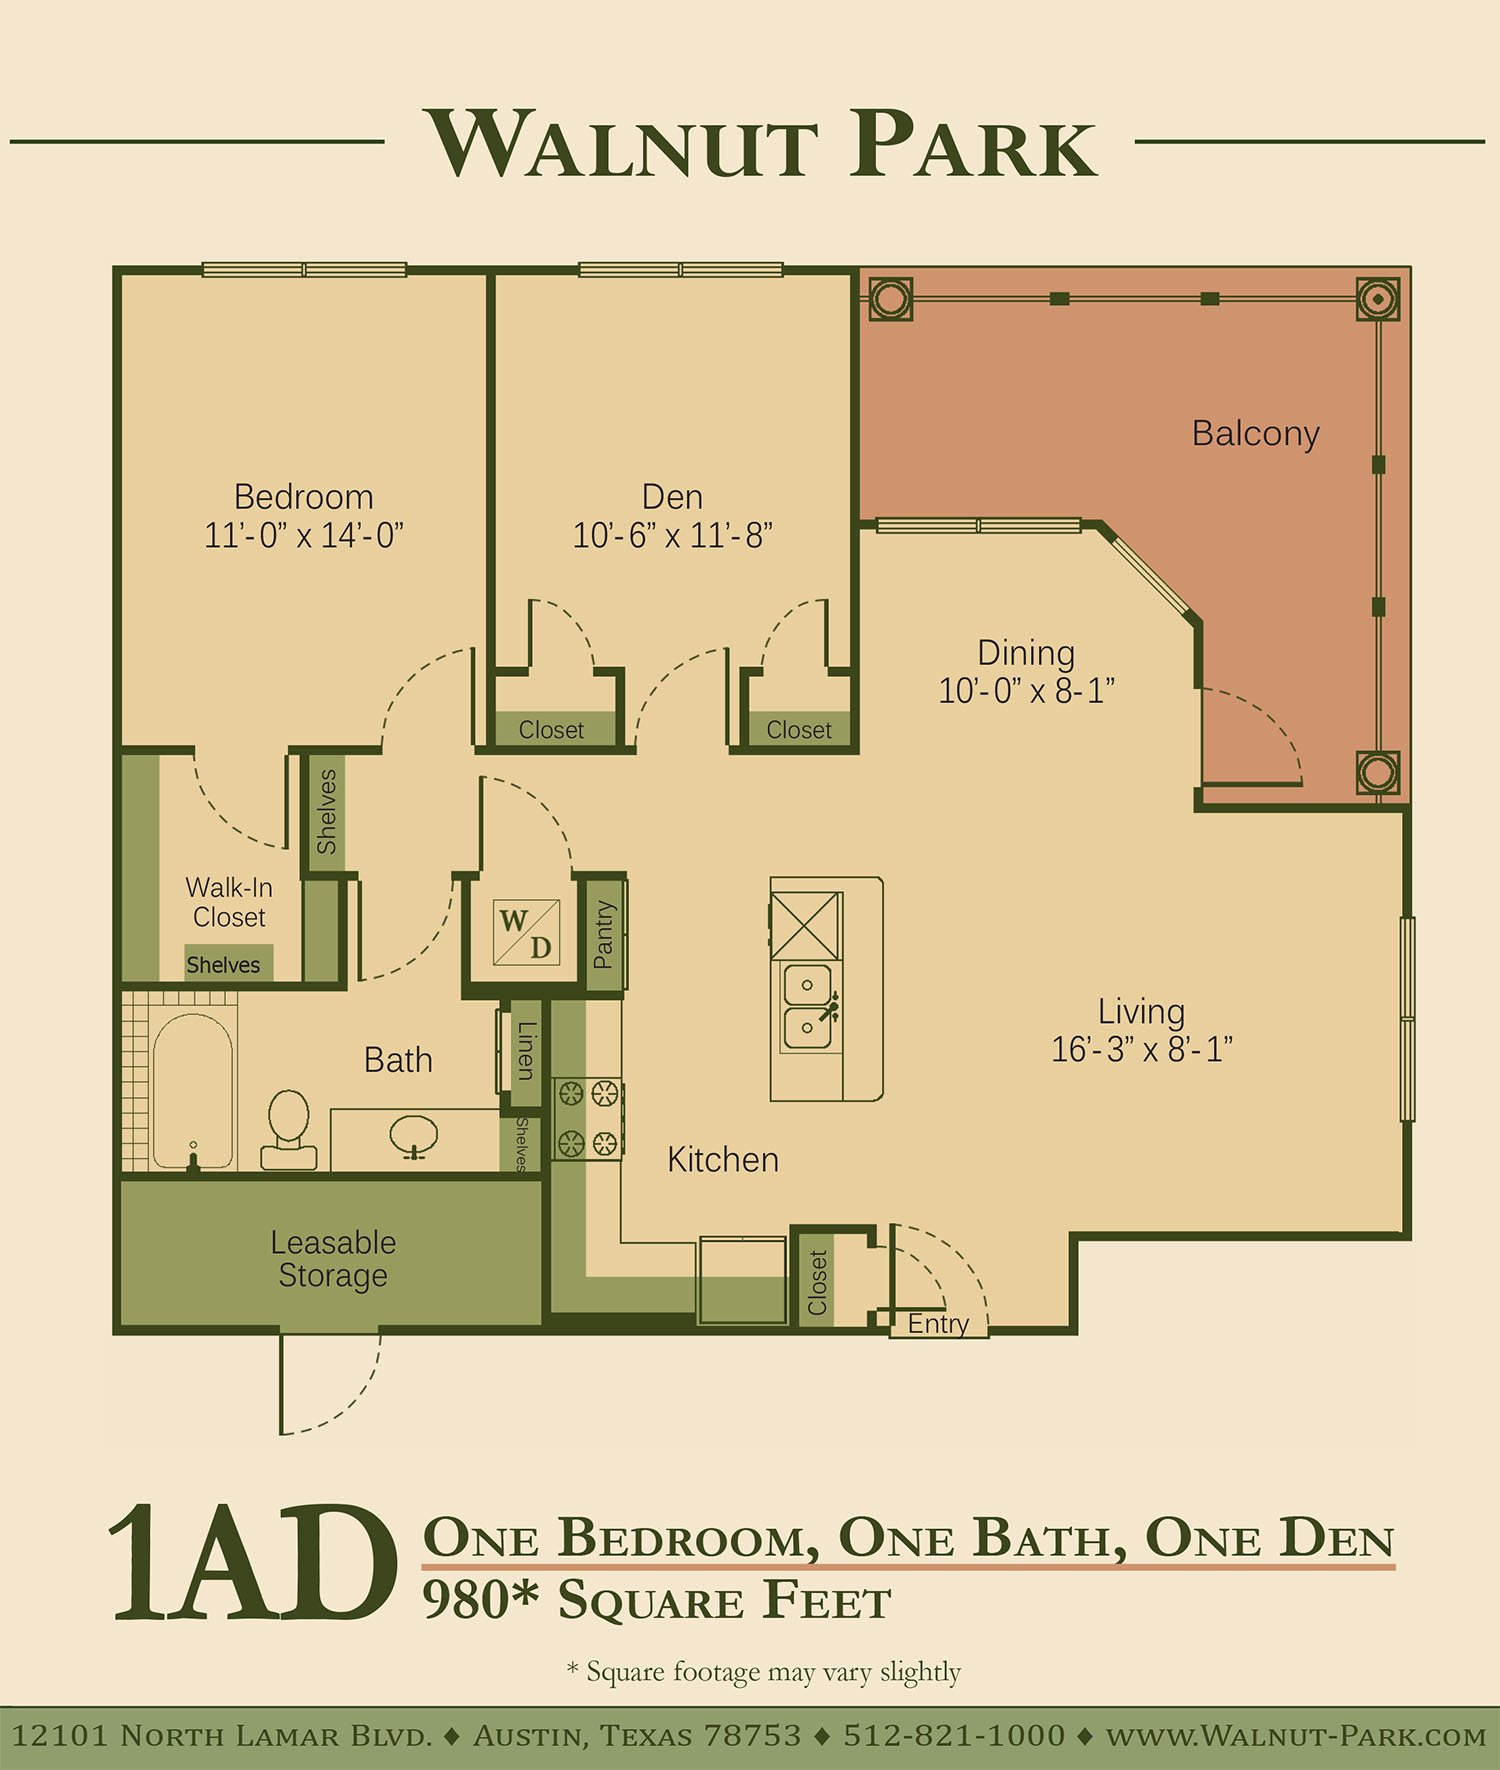 Walnut Park Apartment